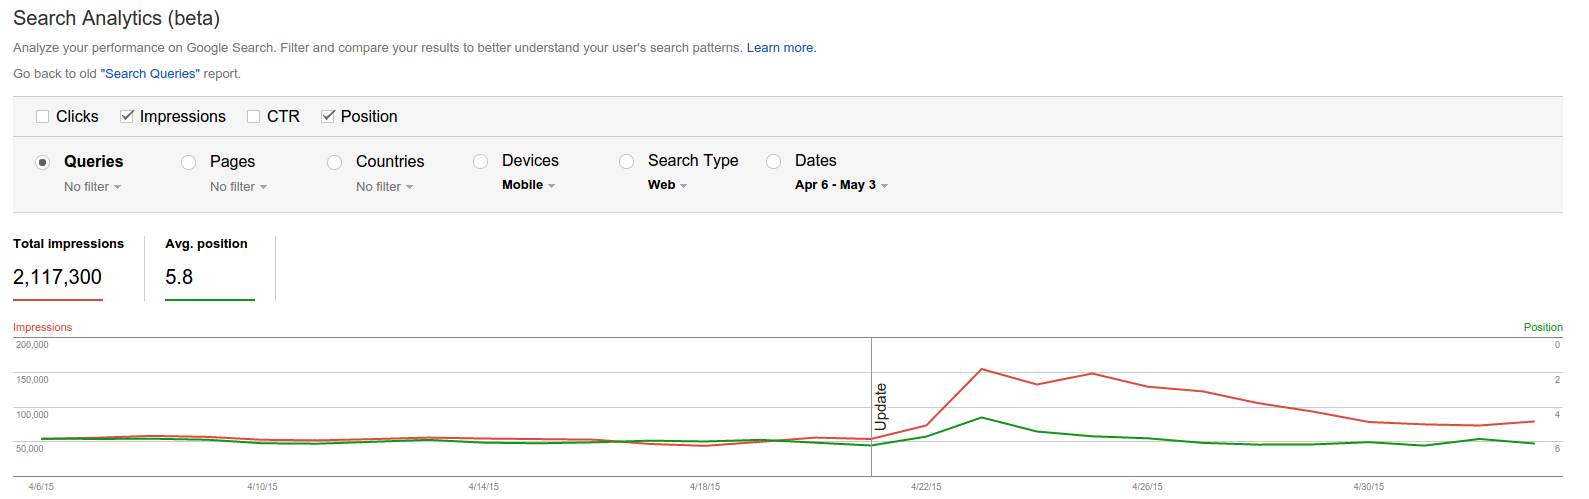 Google Webmaster Tools Launches Search Analytics Report